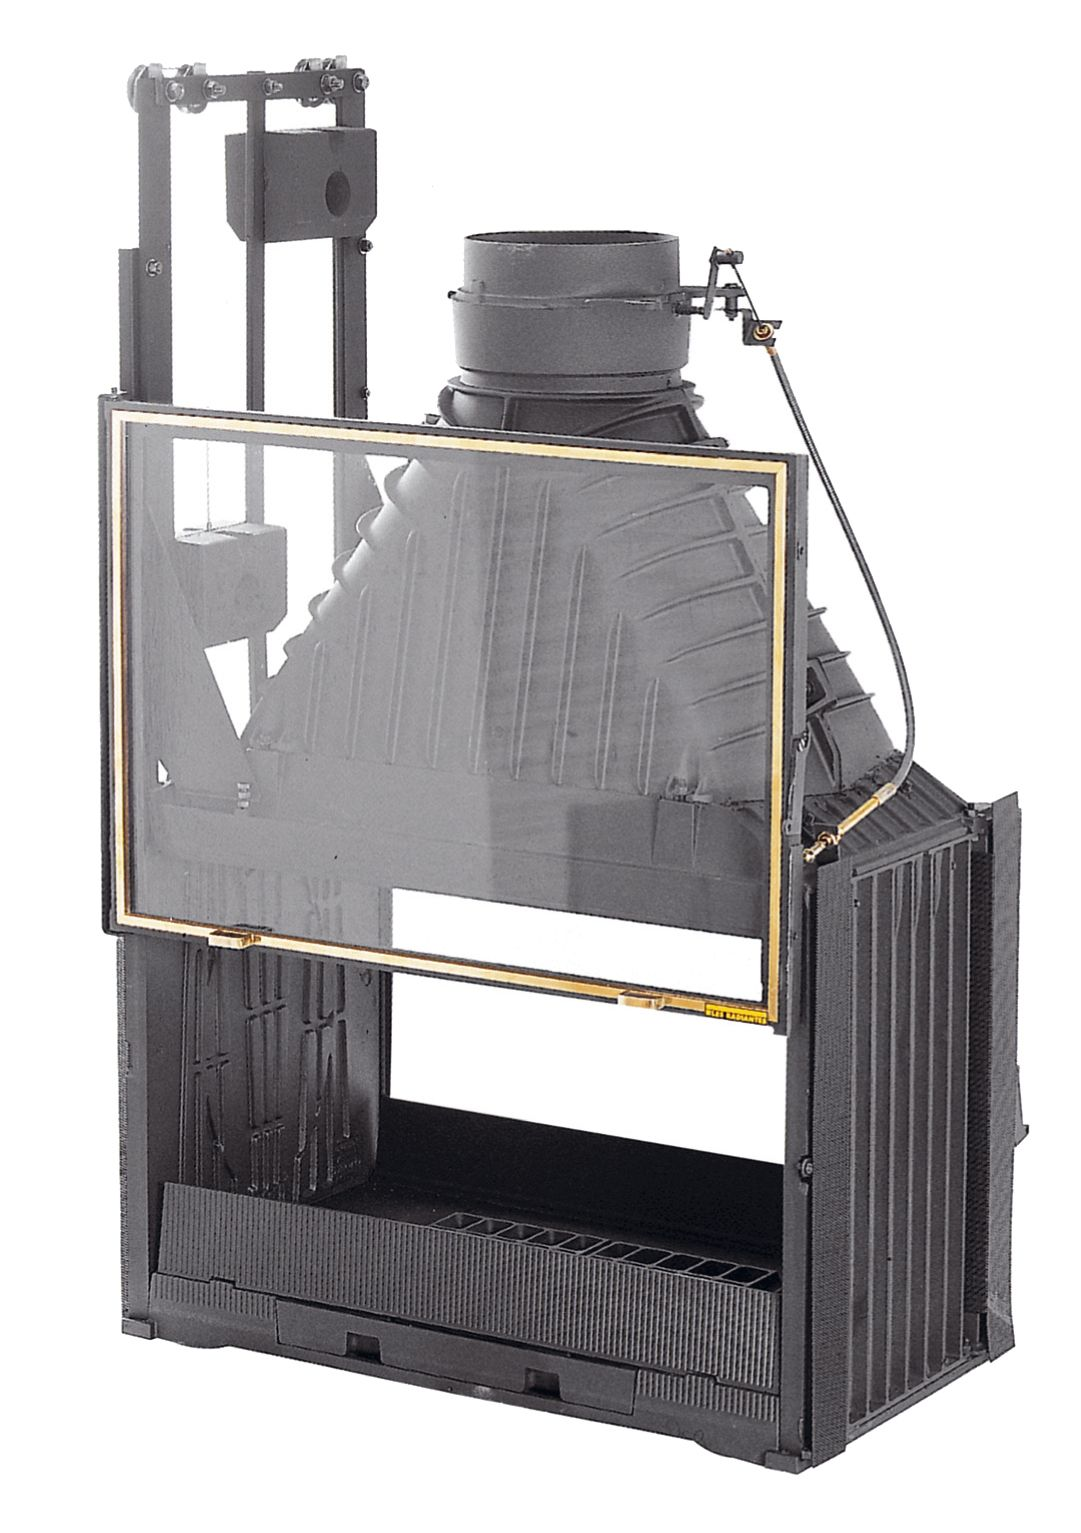 Double Sided Cast Iron Slow Combustion Open Fireplace By Cheminees